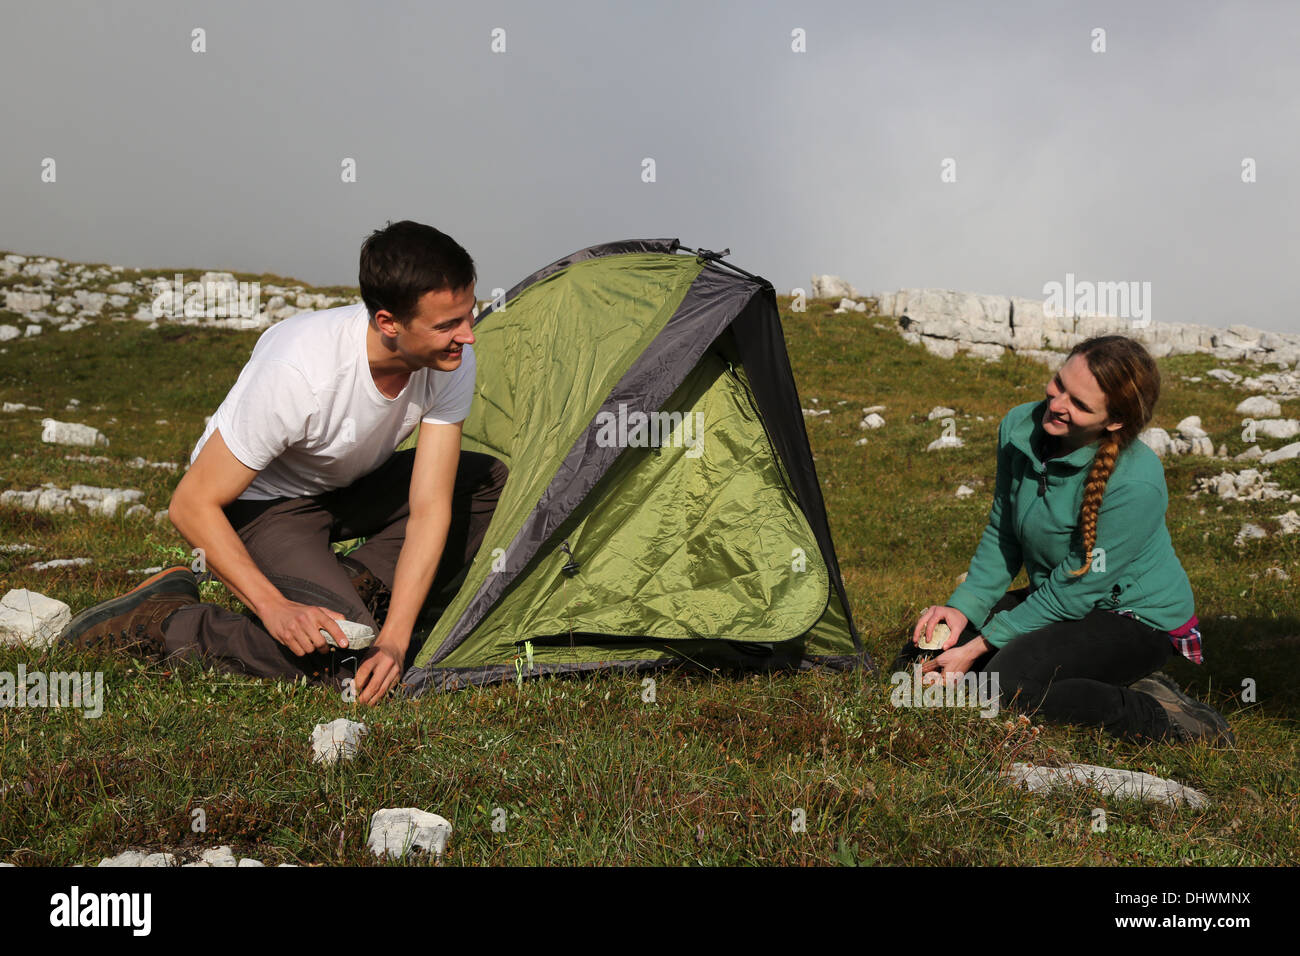 two young people building up a tent in the mountains alps stock